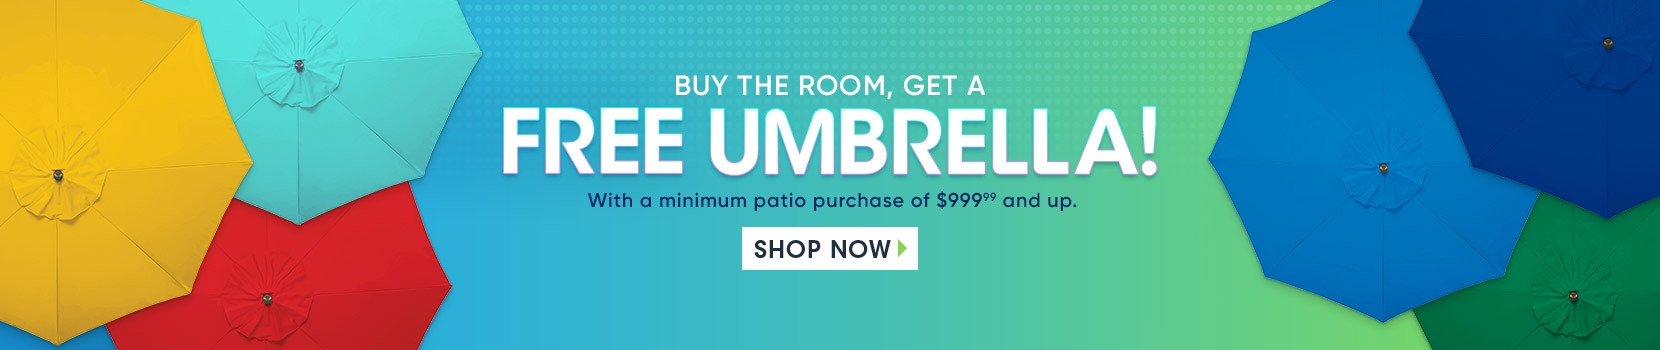 30th anniversary sale. buy the room, get a free umbrella with a minimum purchase of 999.99 and up. shop now